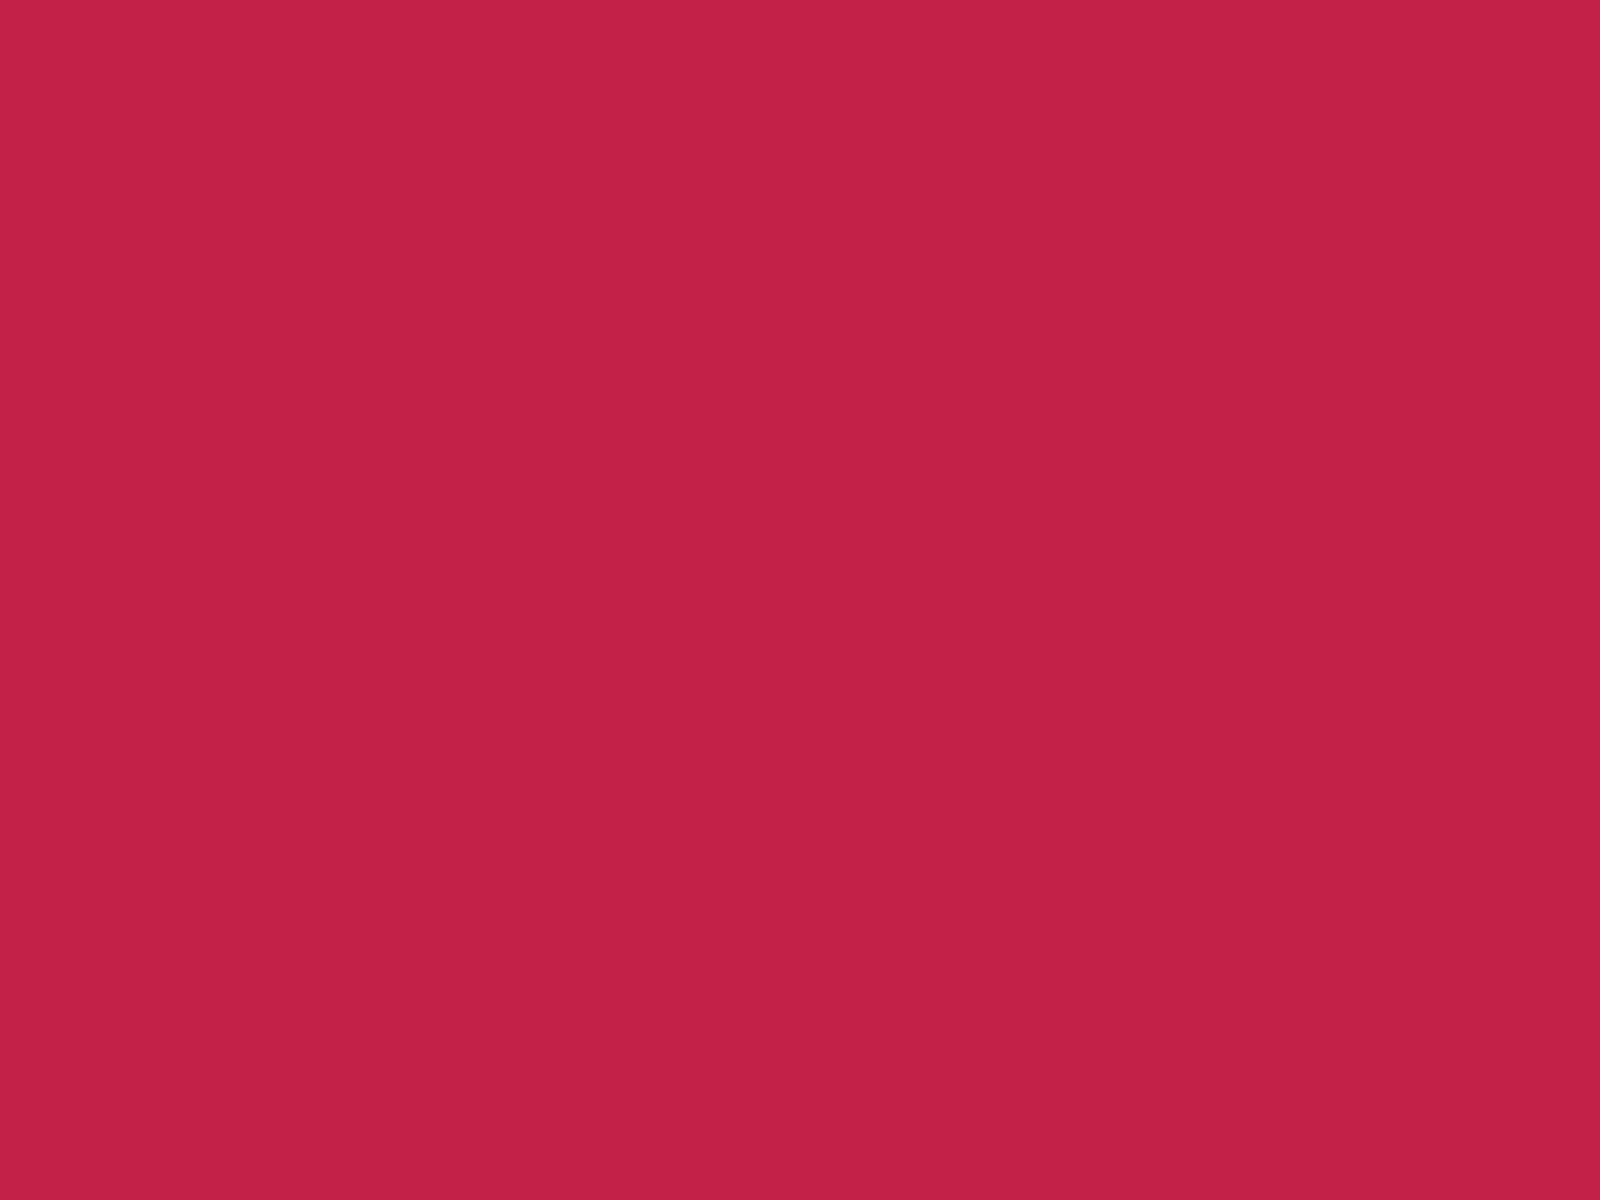 1600x1200 Bright Maroon Solid Color Background